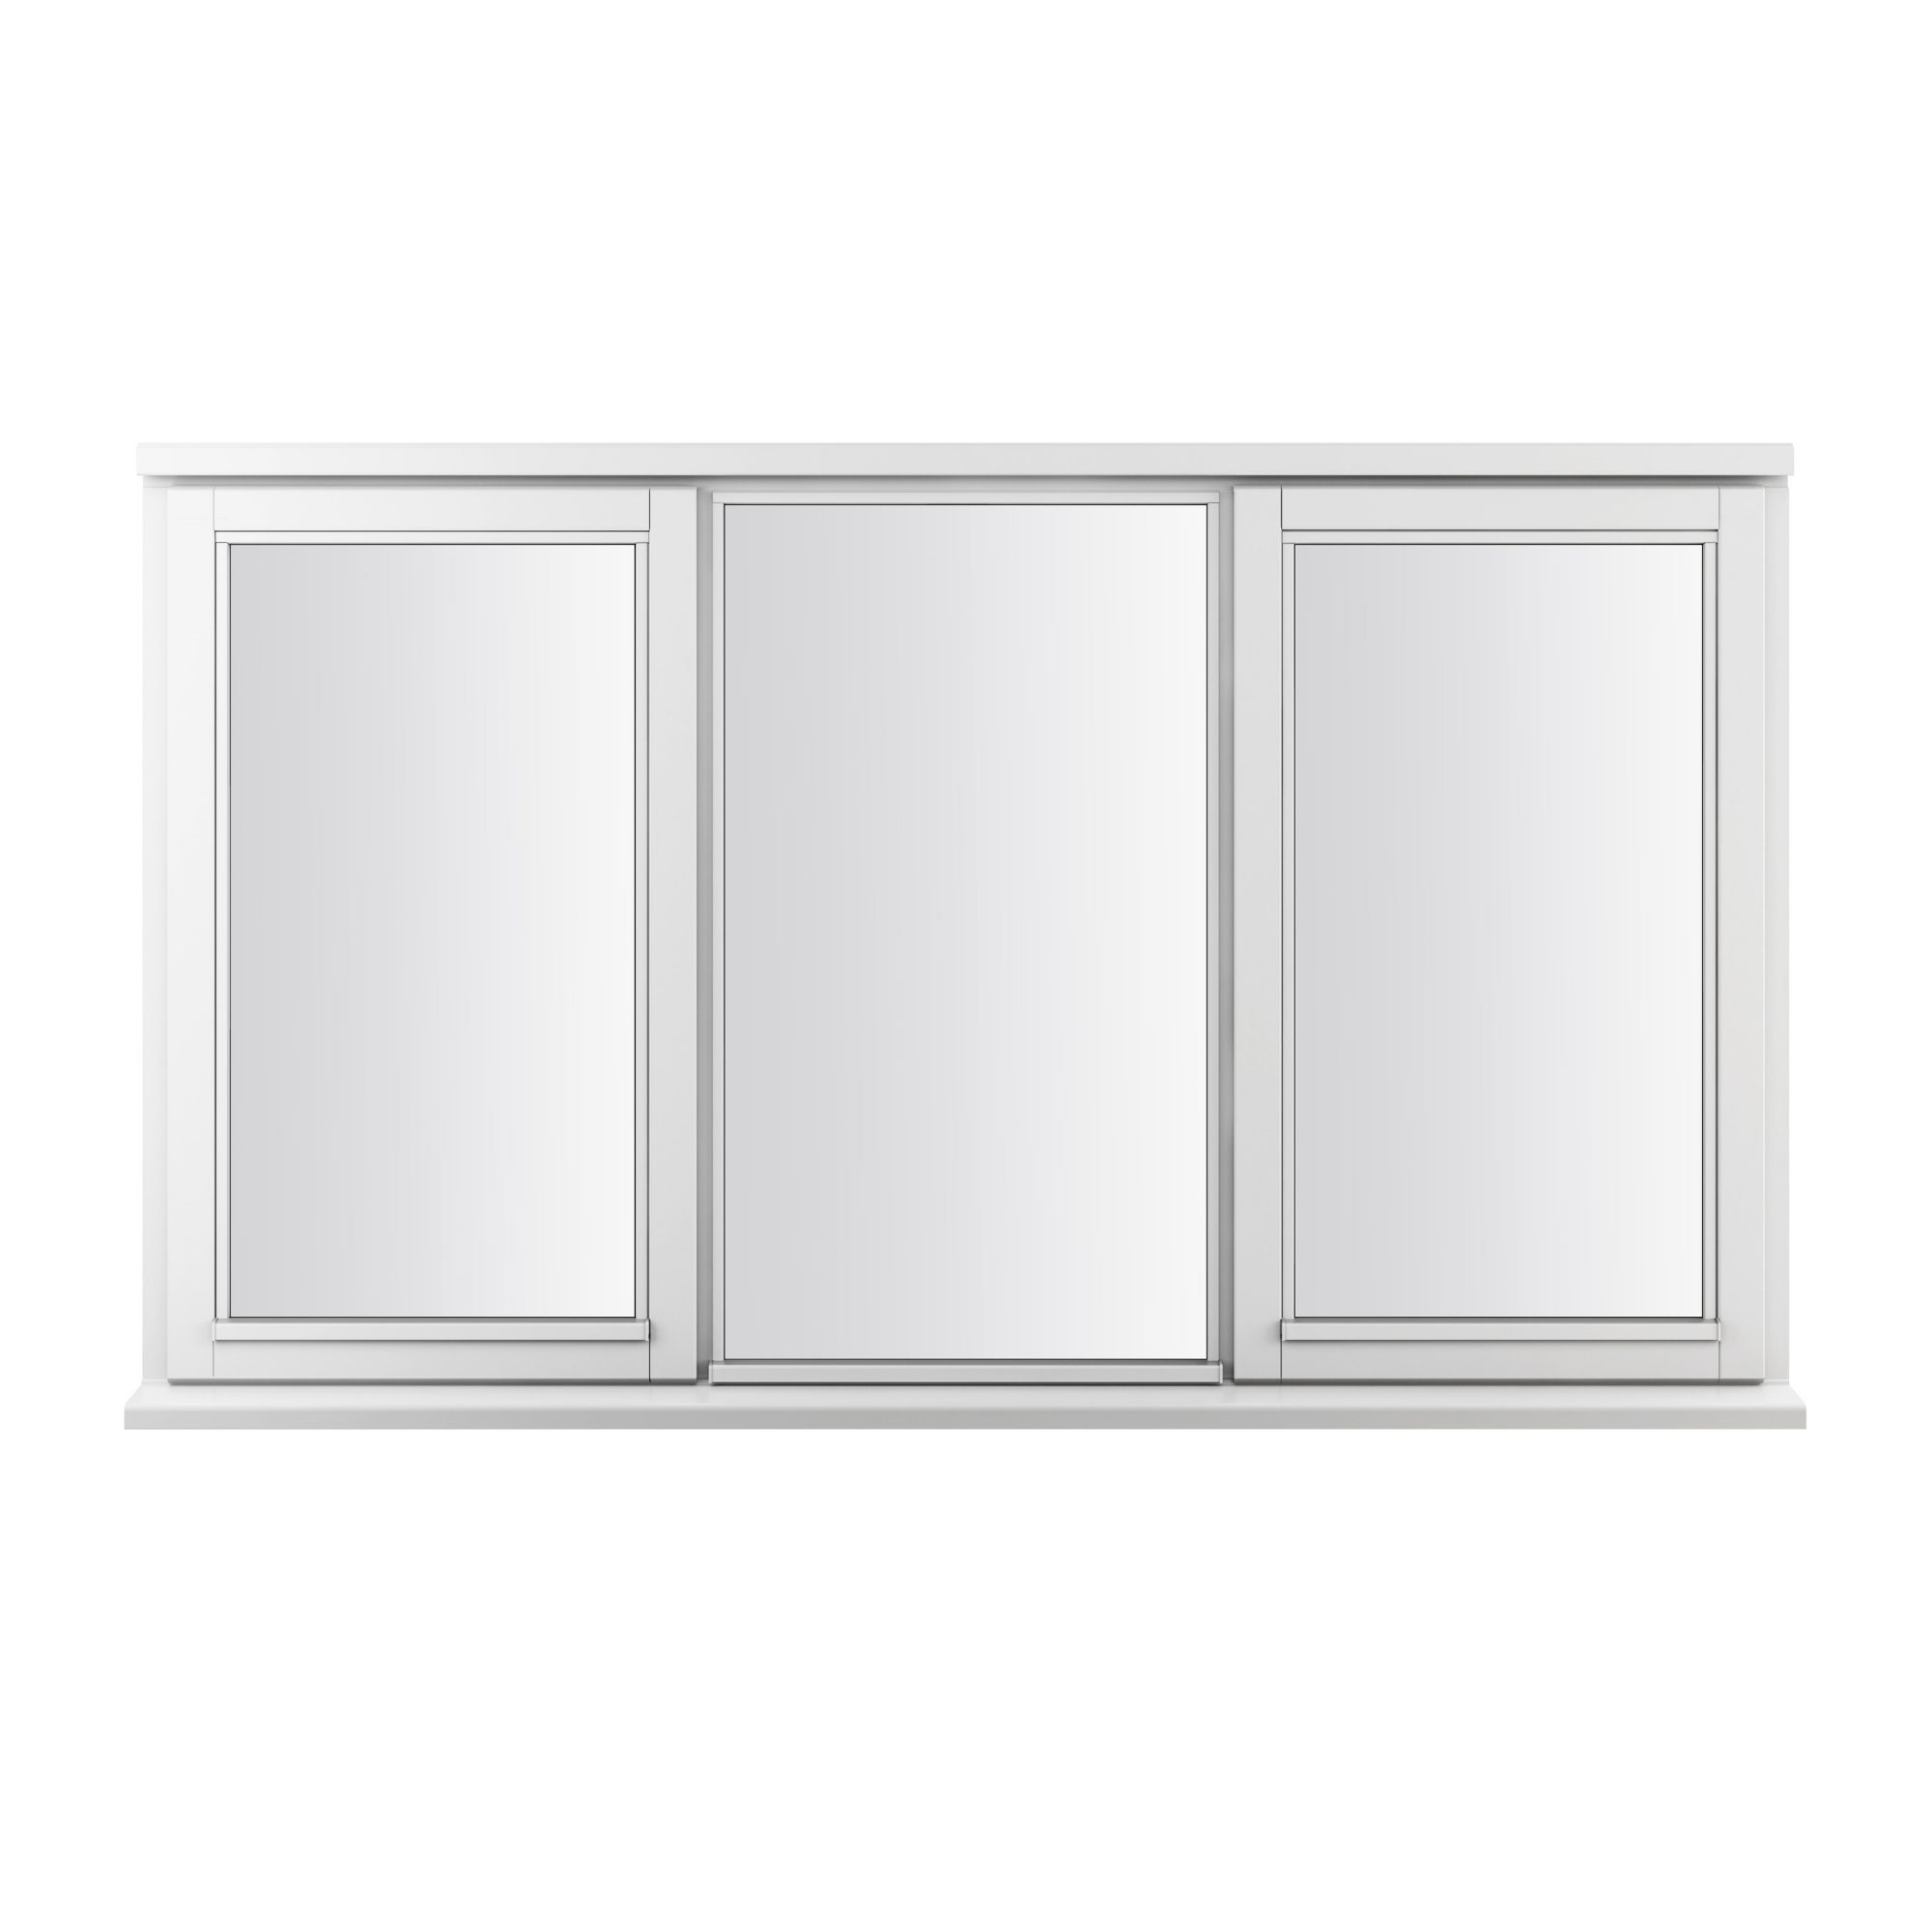 Double glazed timber side hung casement window h 1045mm for Double casement windows